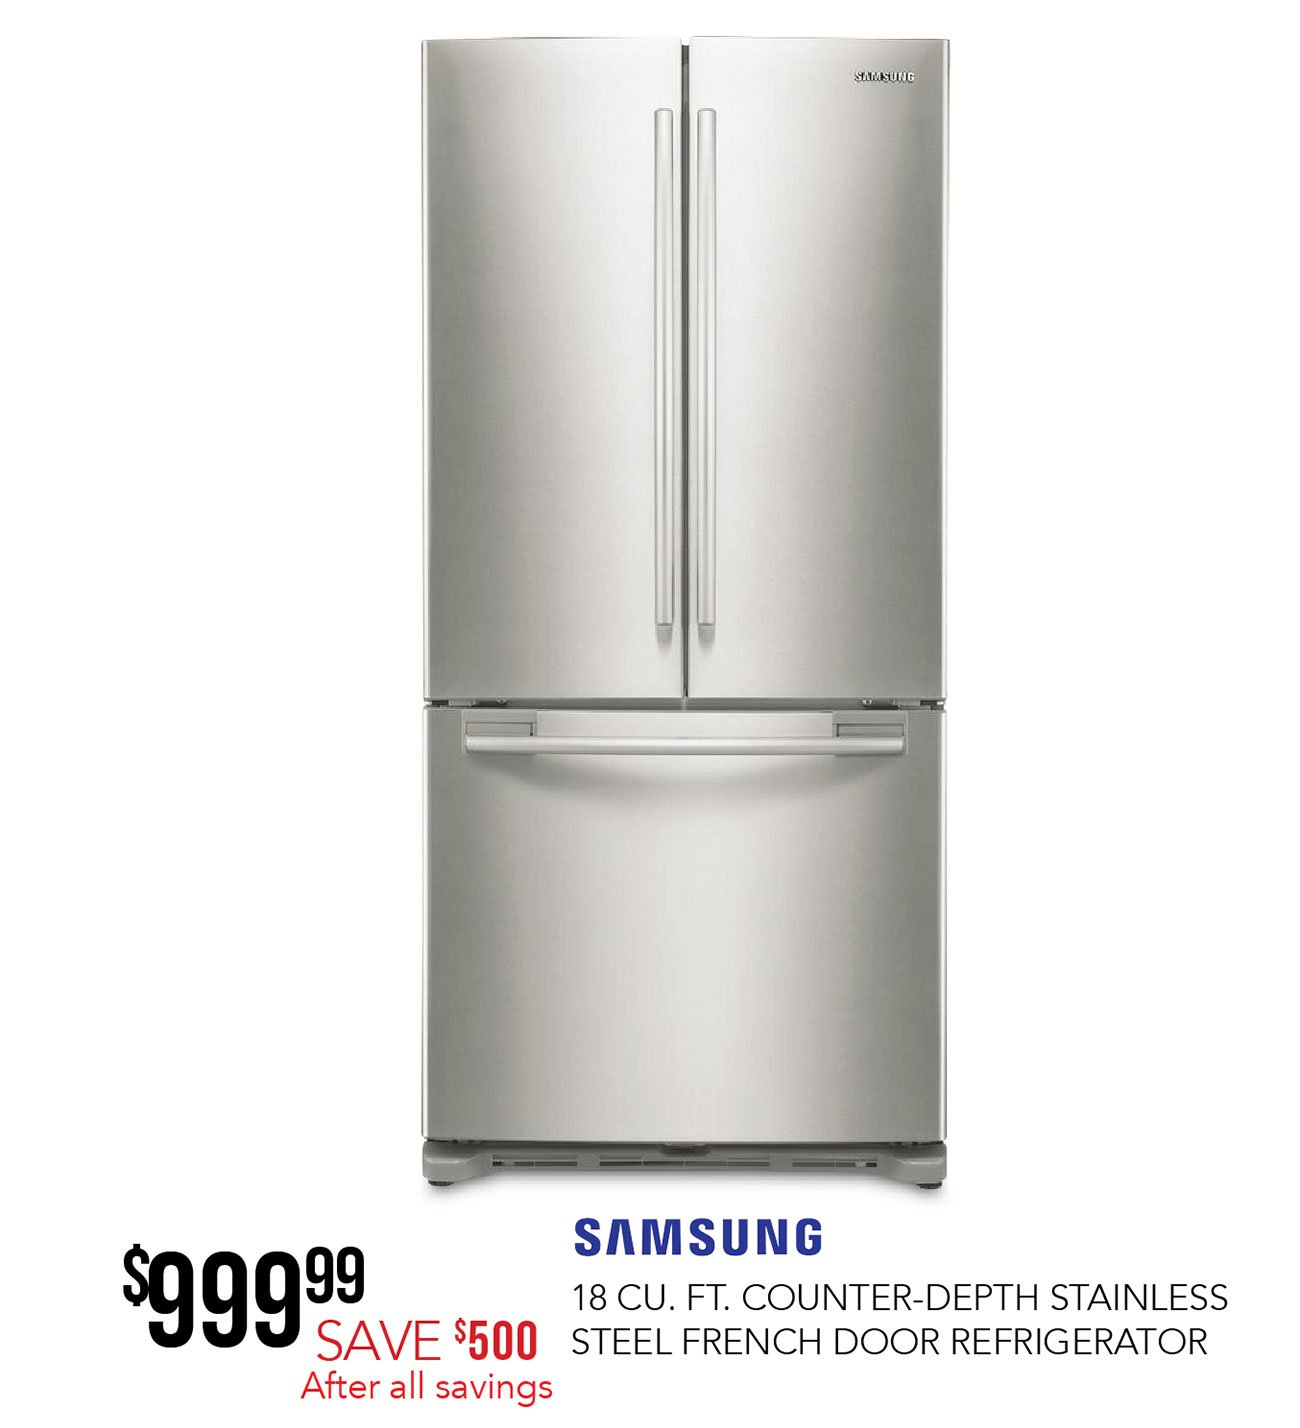 Samsung French Door Refrigerator   33 Inch Stainless Steel Counter Depth |  RC Willey Furniture Store